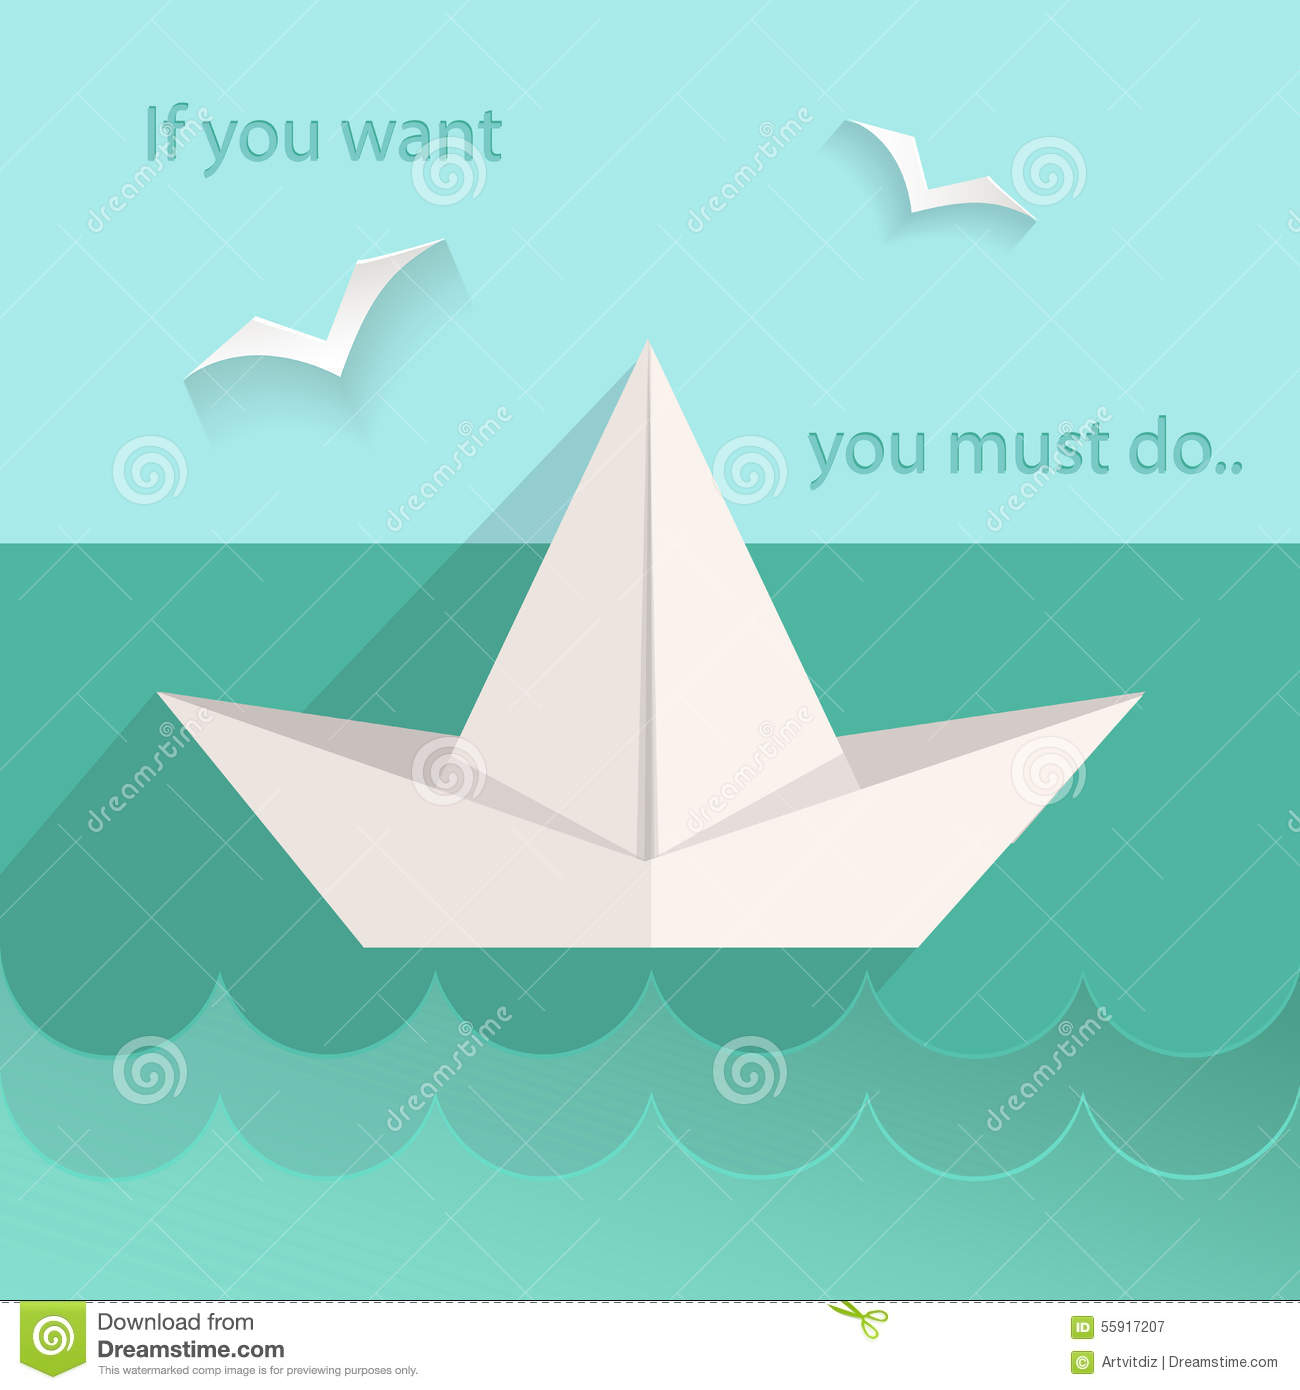 a journey by ship essay A journey by ship essay a journey by ship essay 60th street, east zip 10022 miami dade college creative writing workshop edit my critical thinking on high school students as soon as possible.